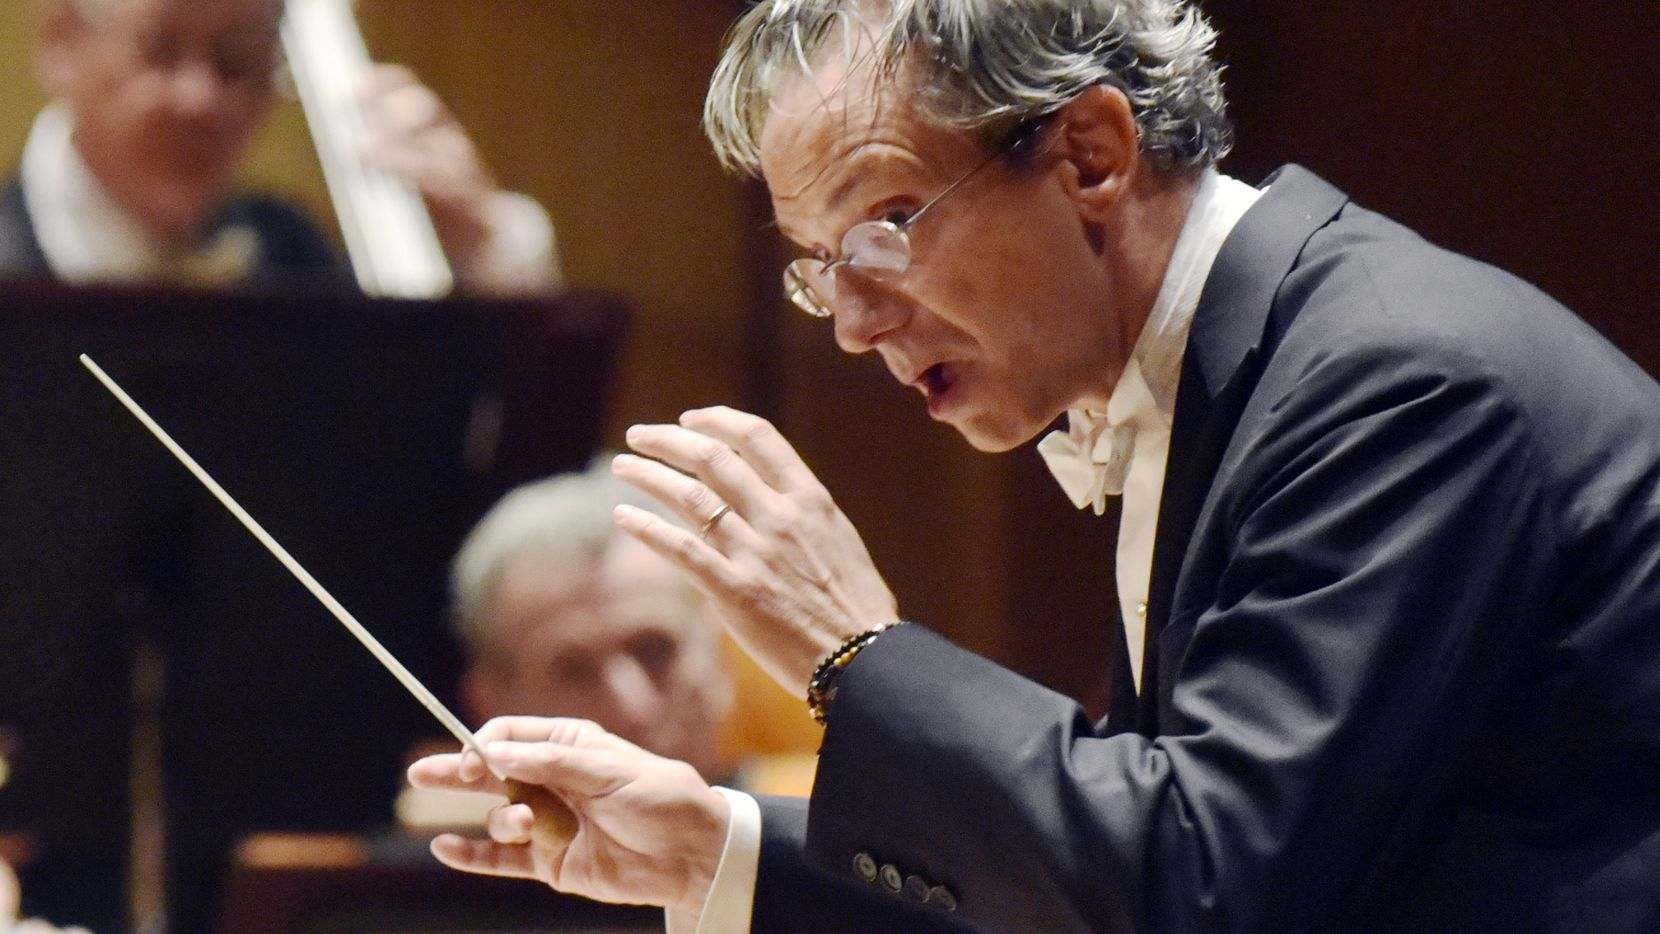 The Dallas Symphony Orchestra with conductor Fabio Luisi perform Beethoven Concerto No. 4 in G major for piano and orchestra, Op. 58, at the Morton H. Meyerson Symphony Center in Dallas, March 8, 2018. Ben Torres/Special Contributor